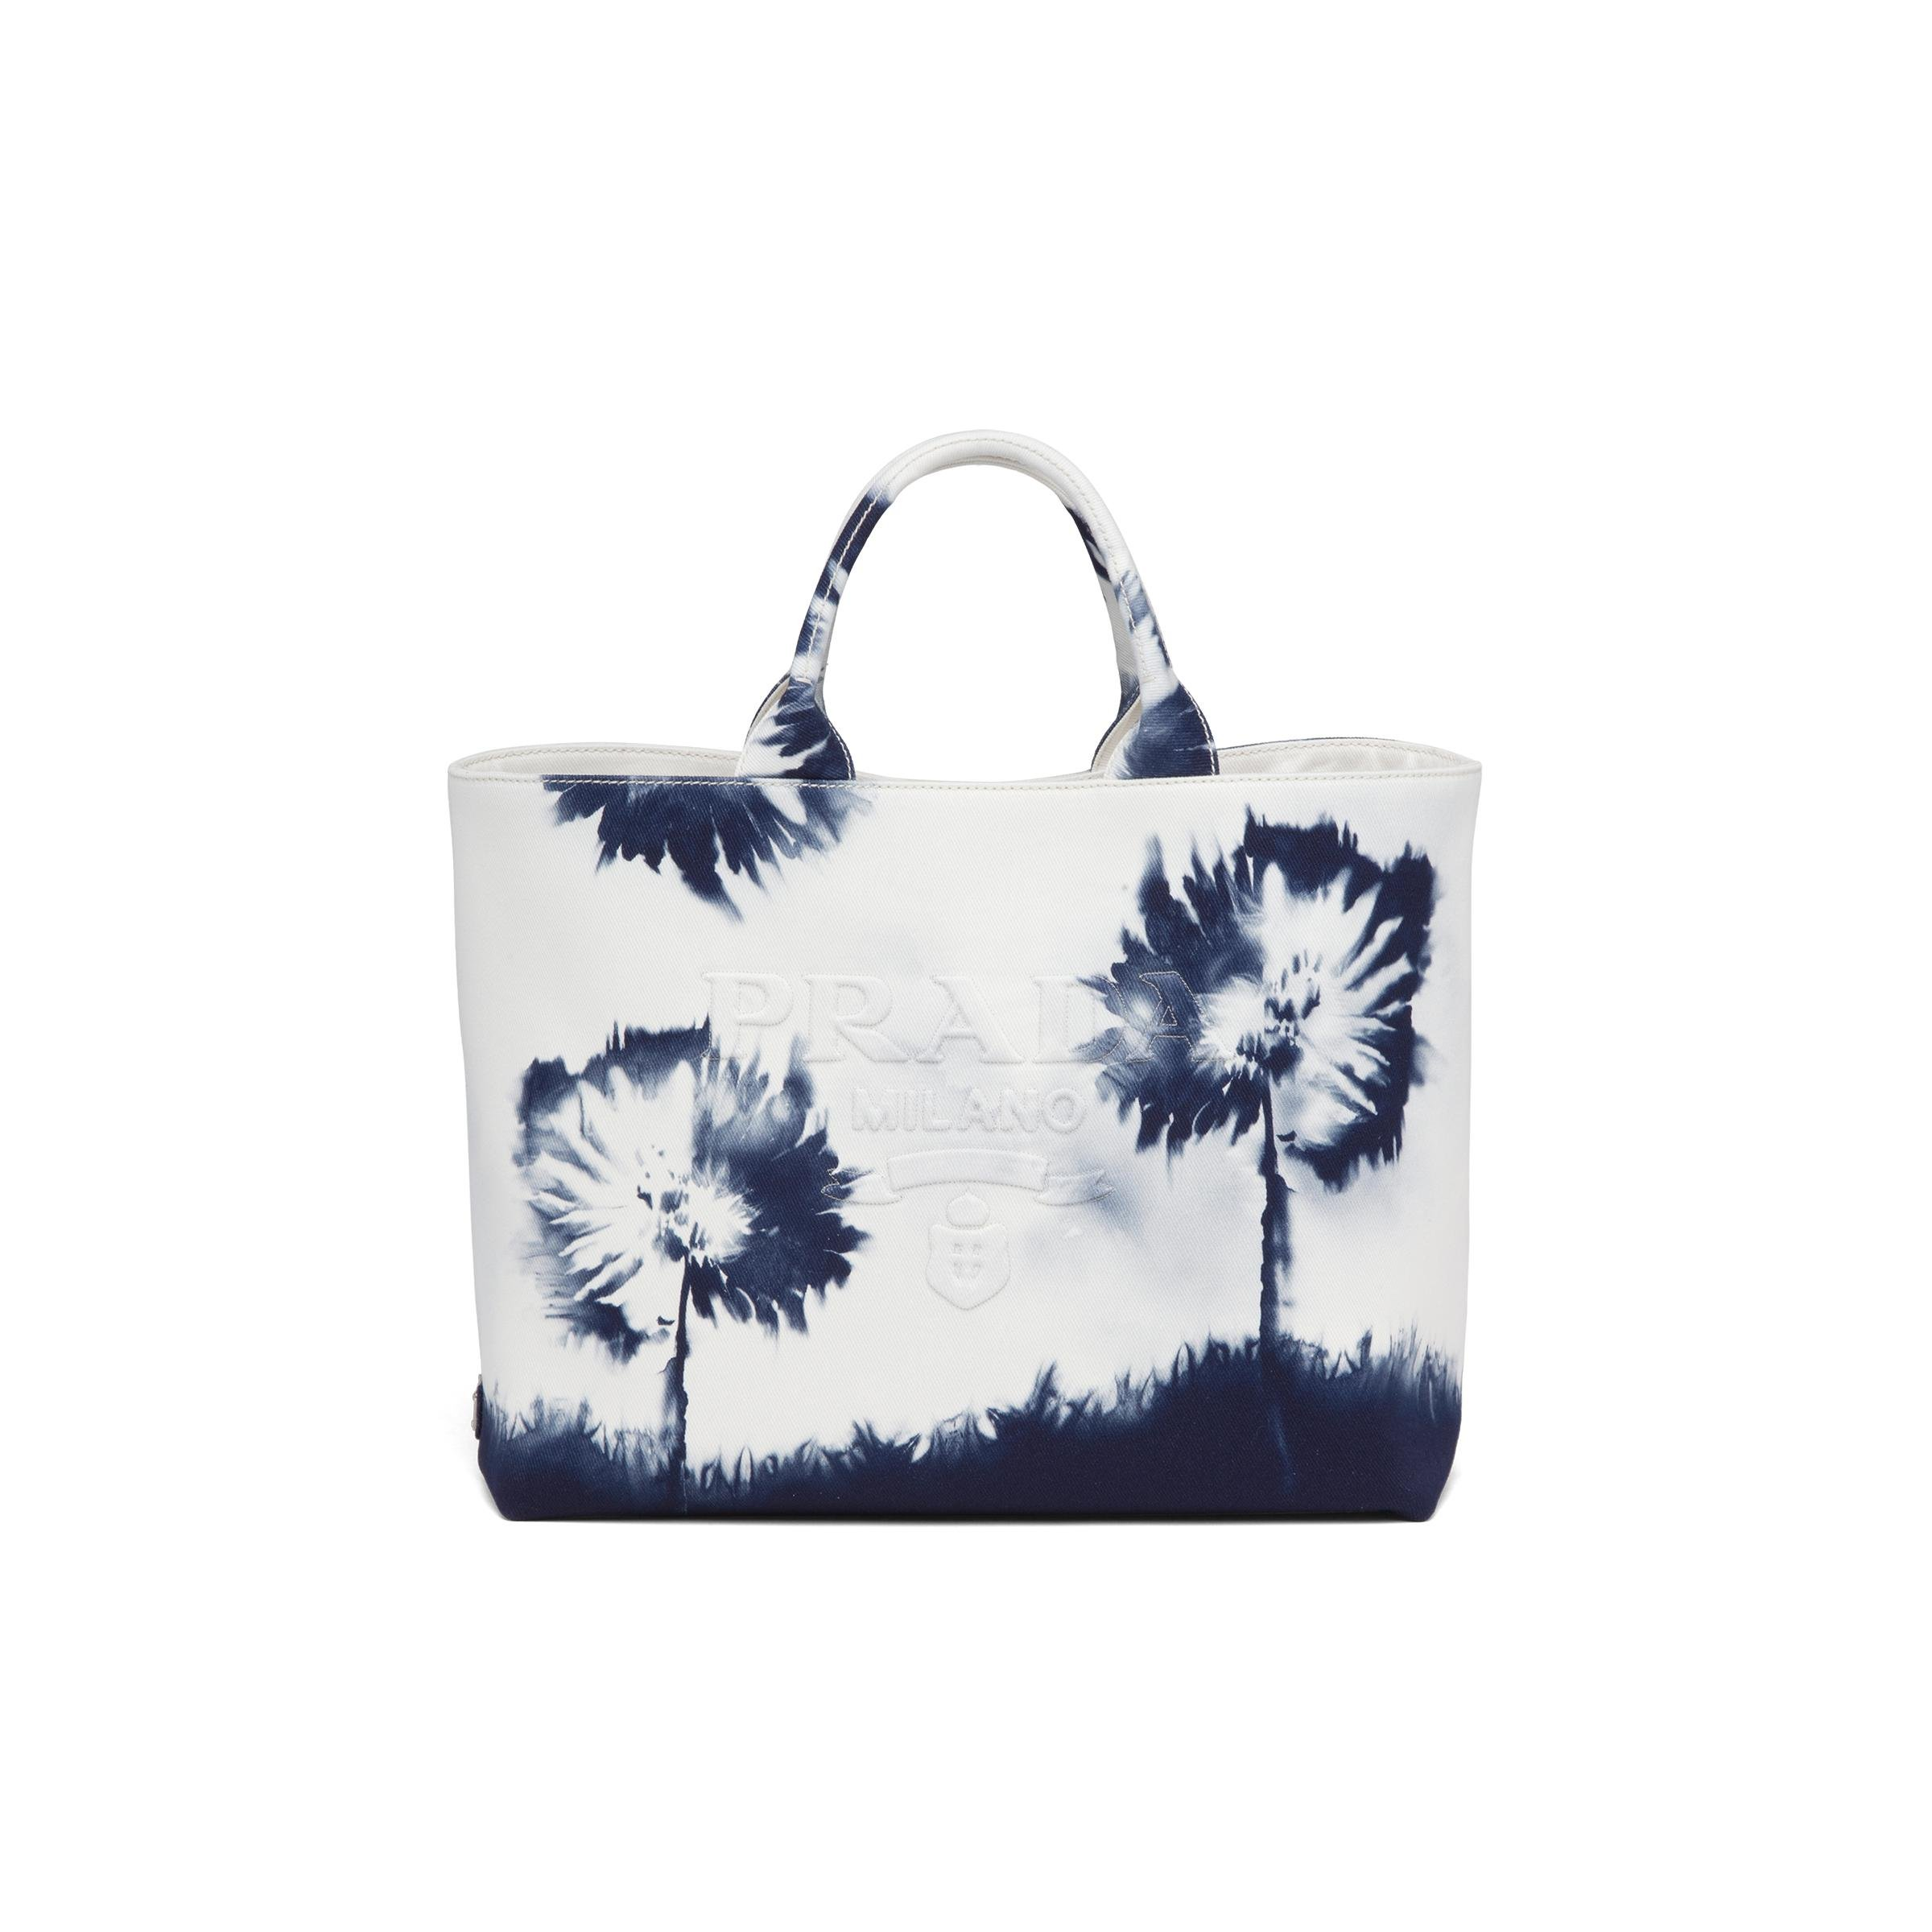 Printed Drill Tote Bag Women White/navy Blue